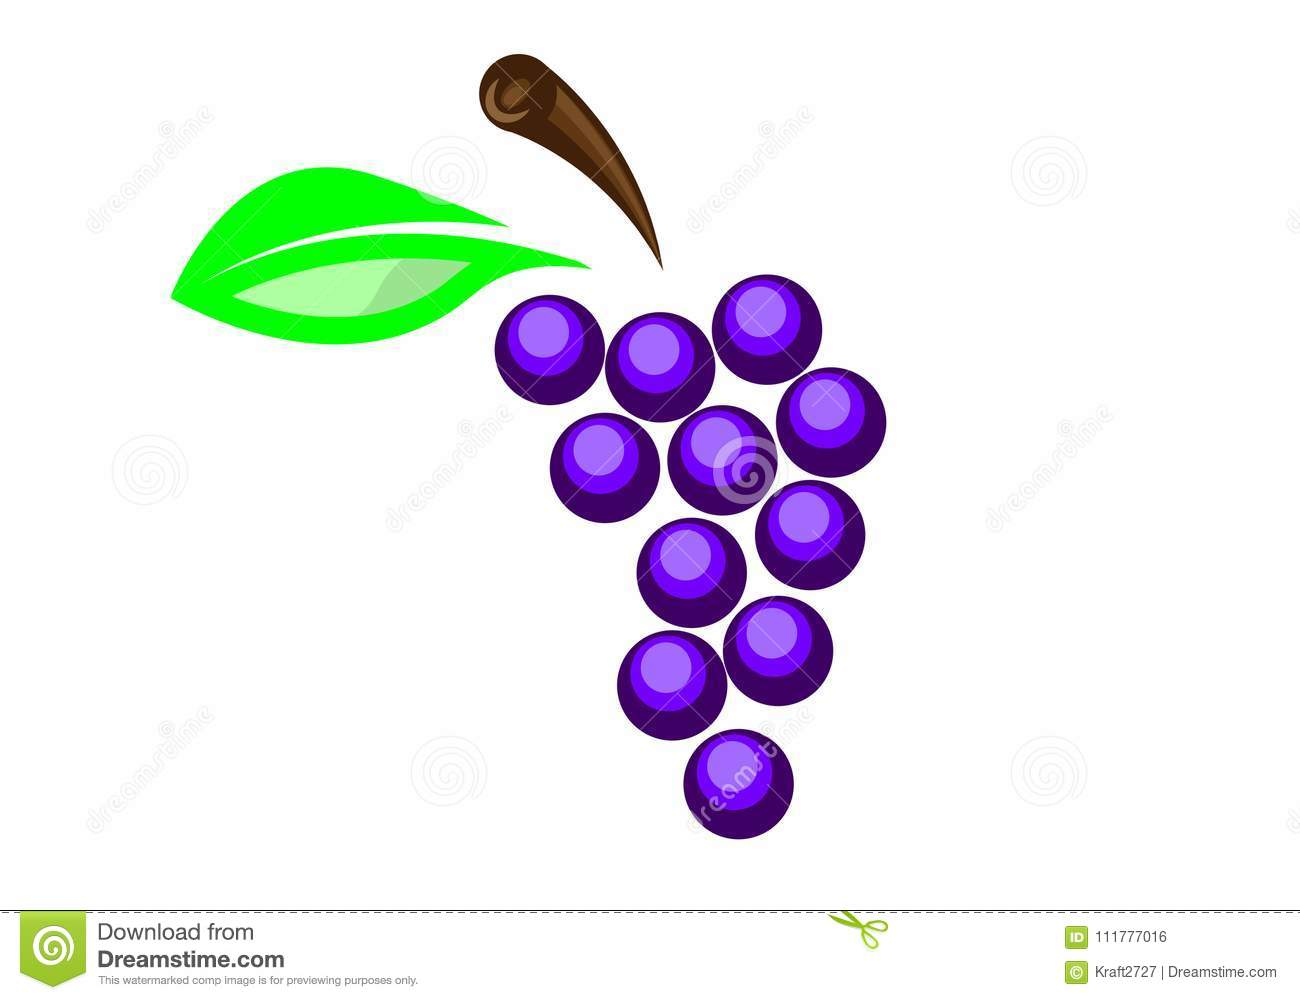 Logo of the grapes in a flat design